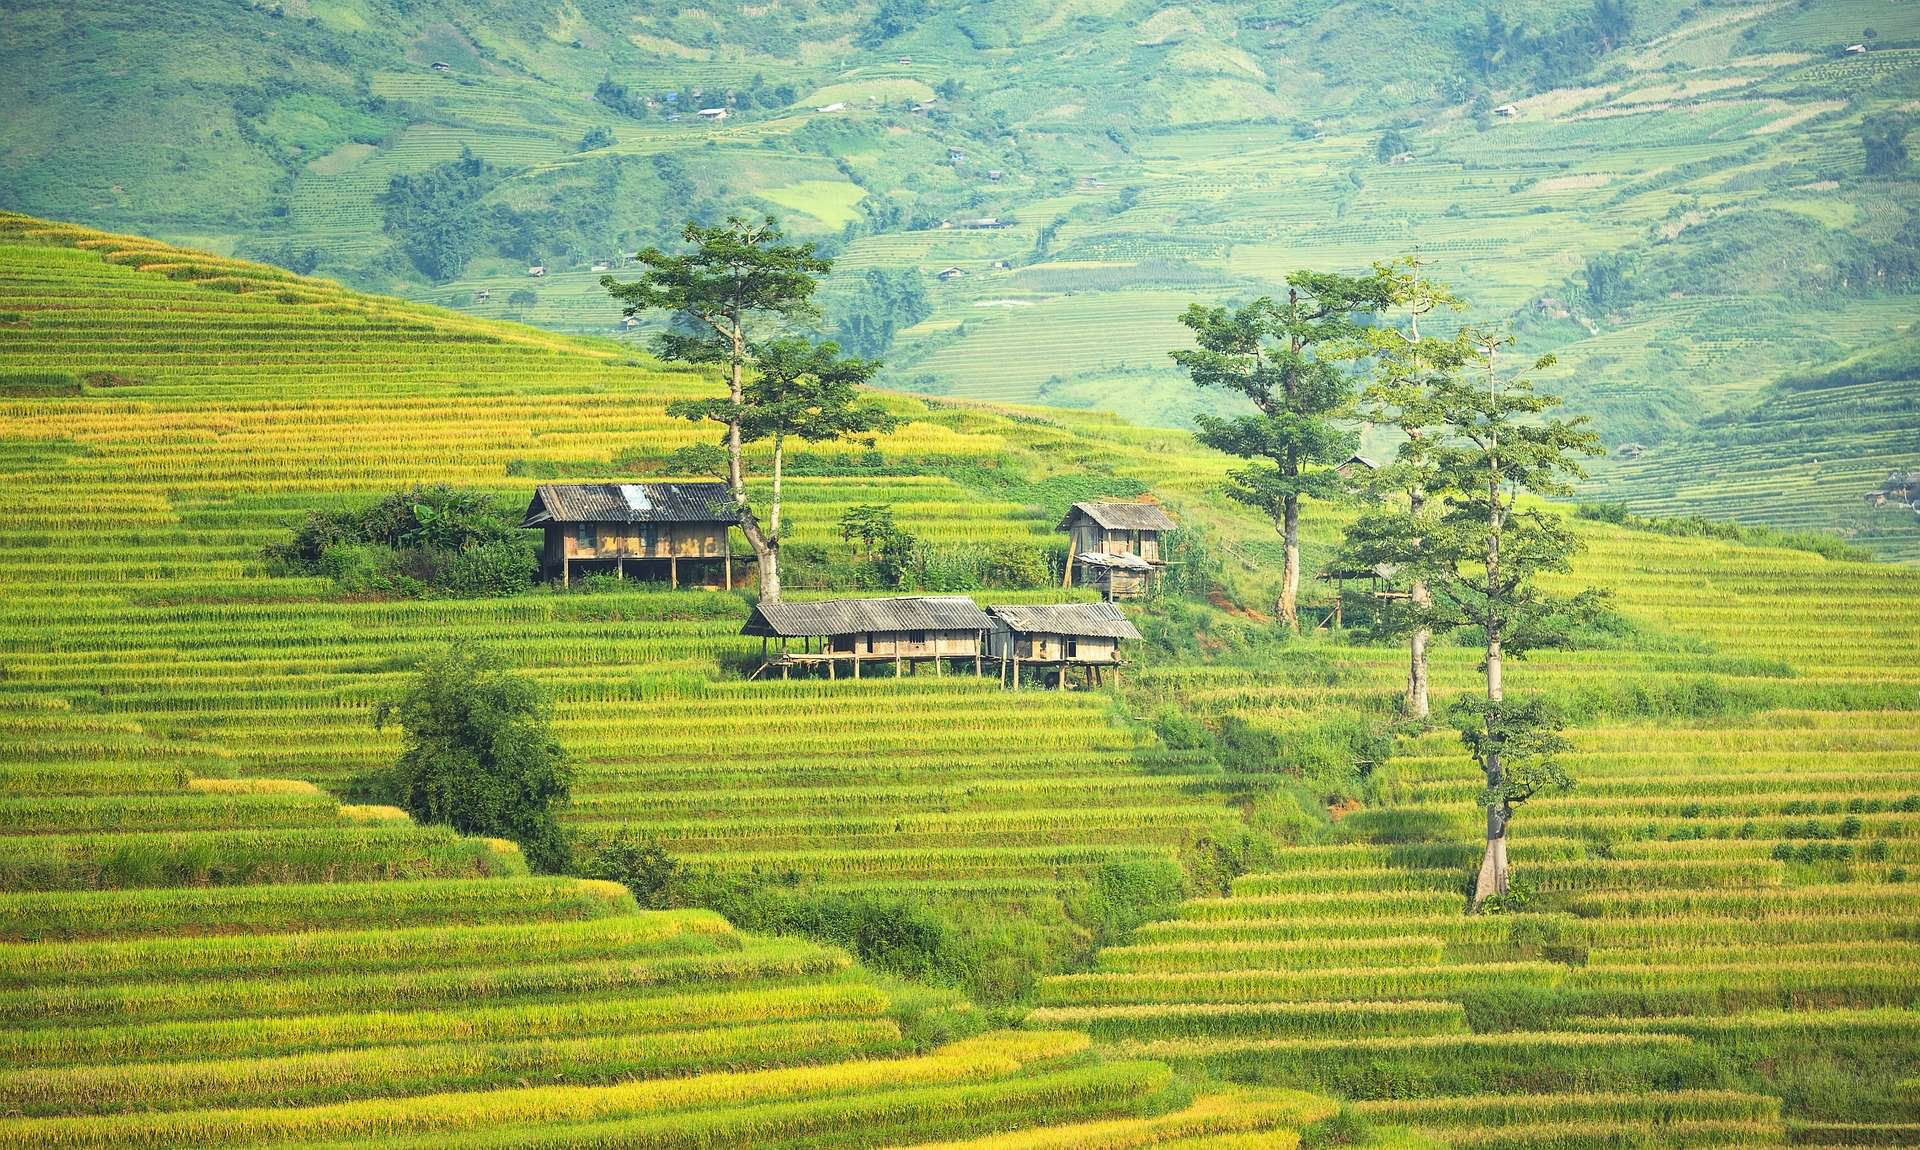 thailand agriculture, thailand facts